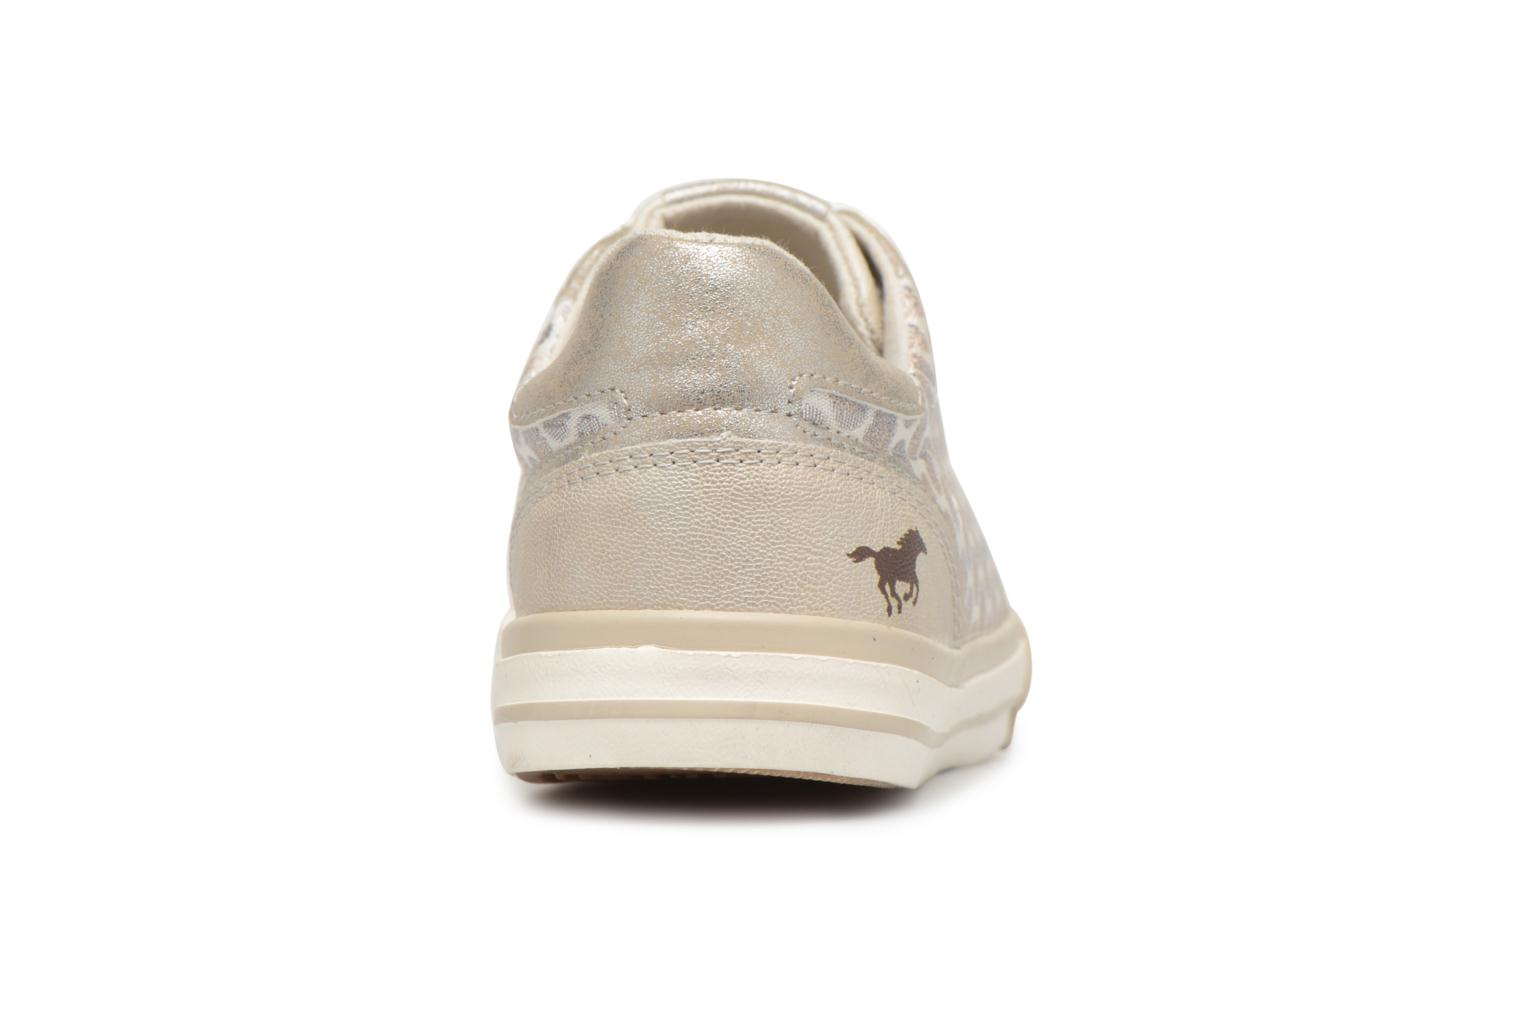 Ivory Ivory 1146310 Mustang 243 shoes x0Yaw6Aq